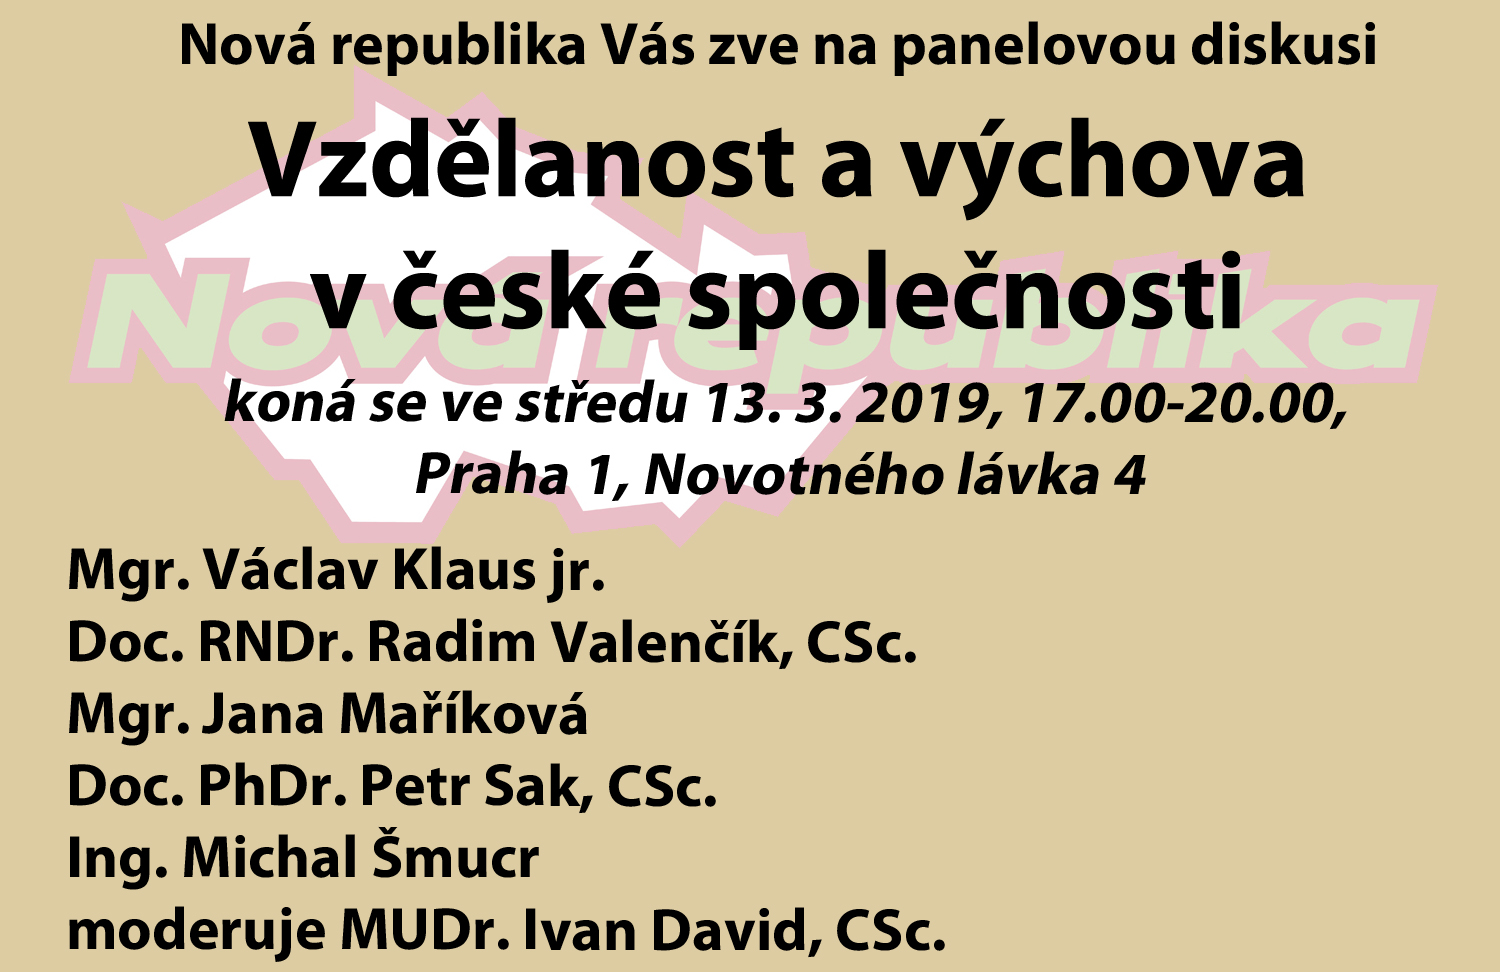 Panelová diskuze 13. 3. 2019